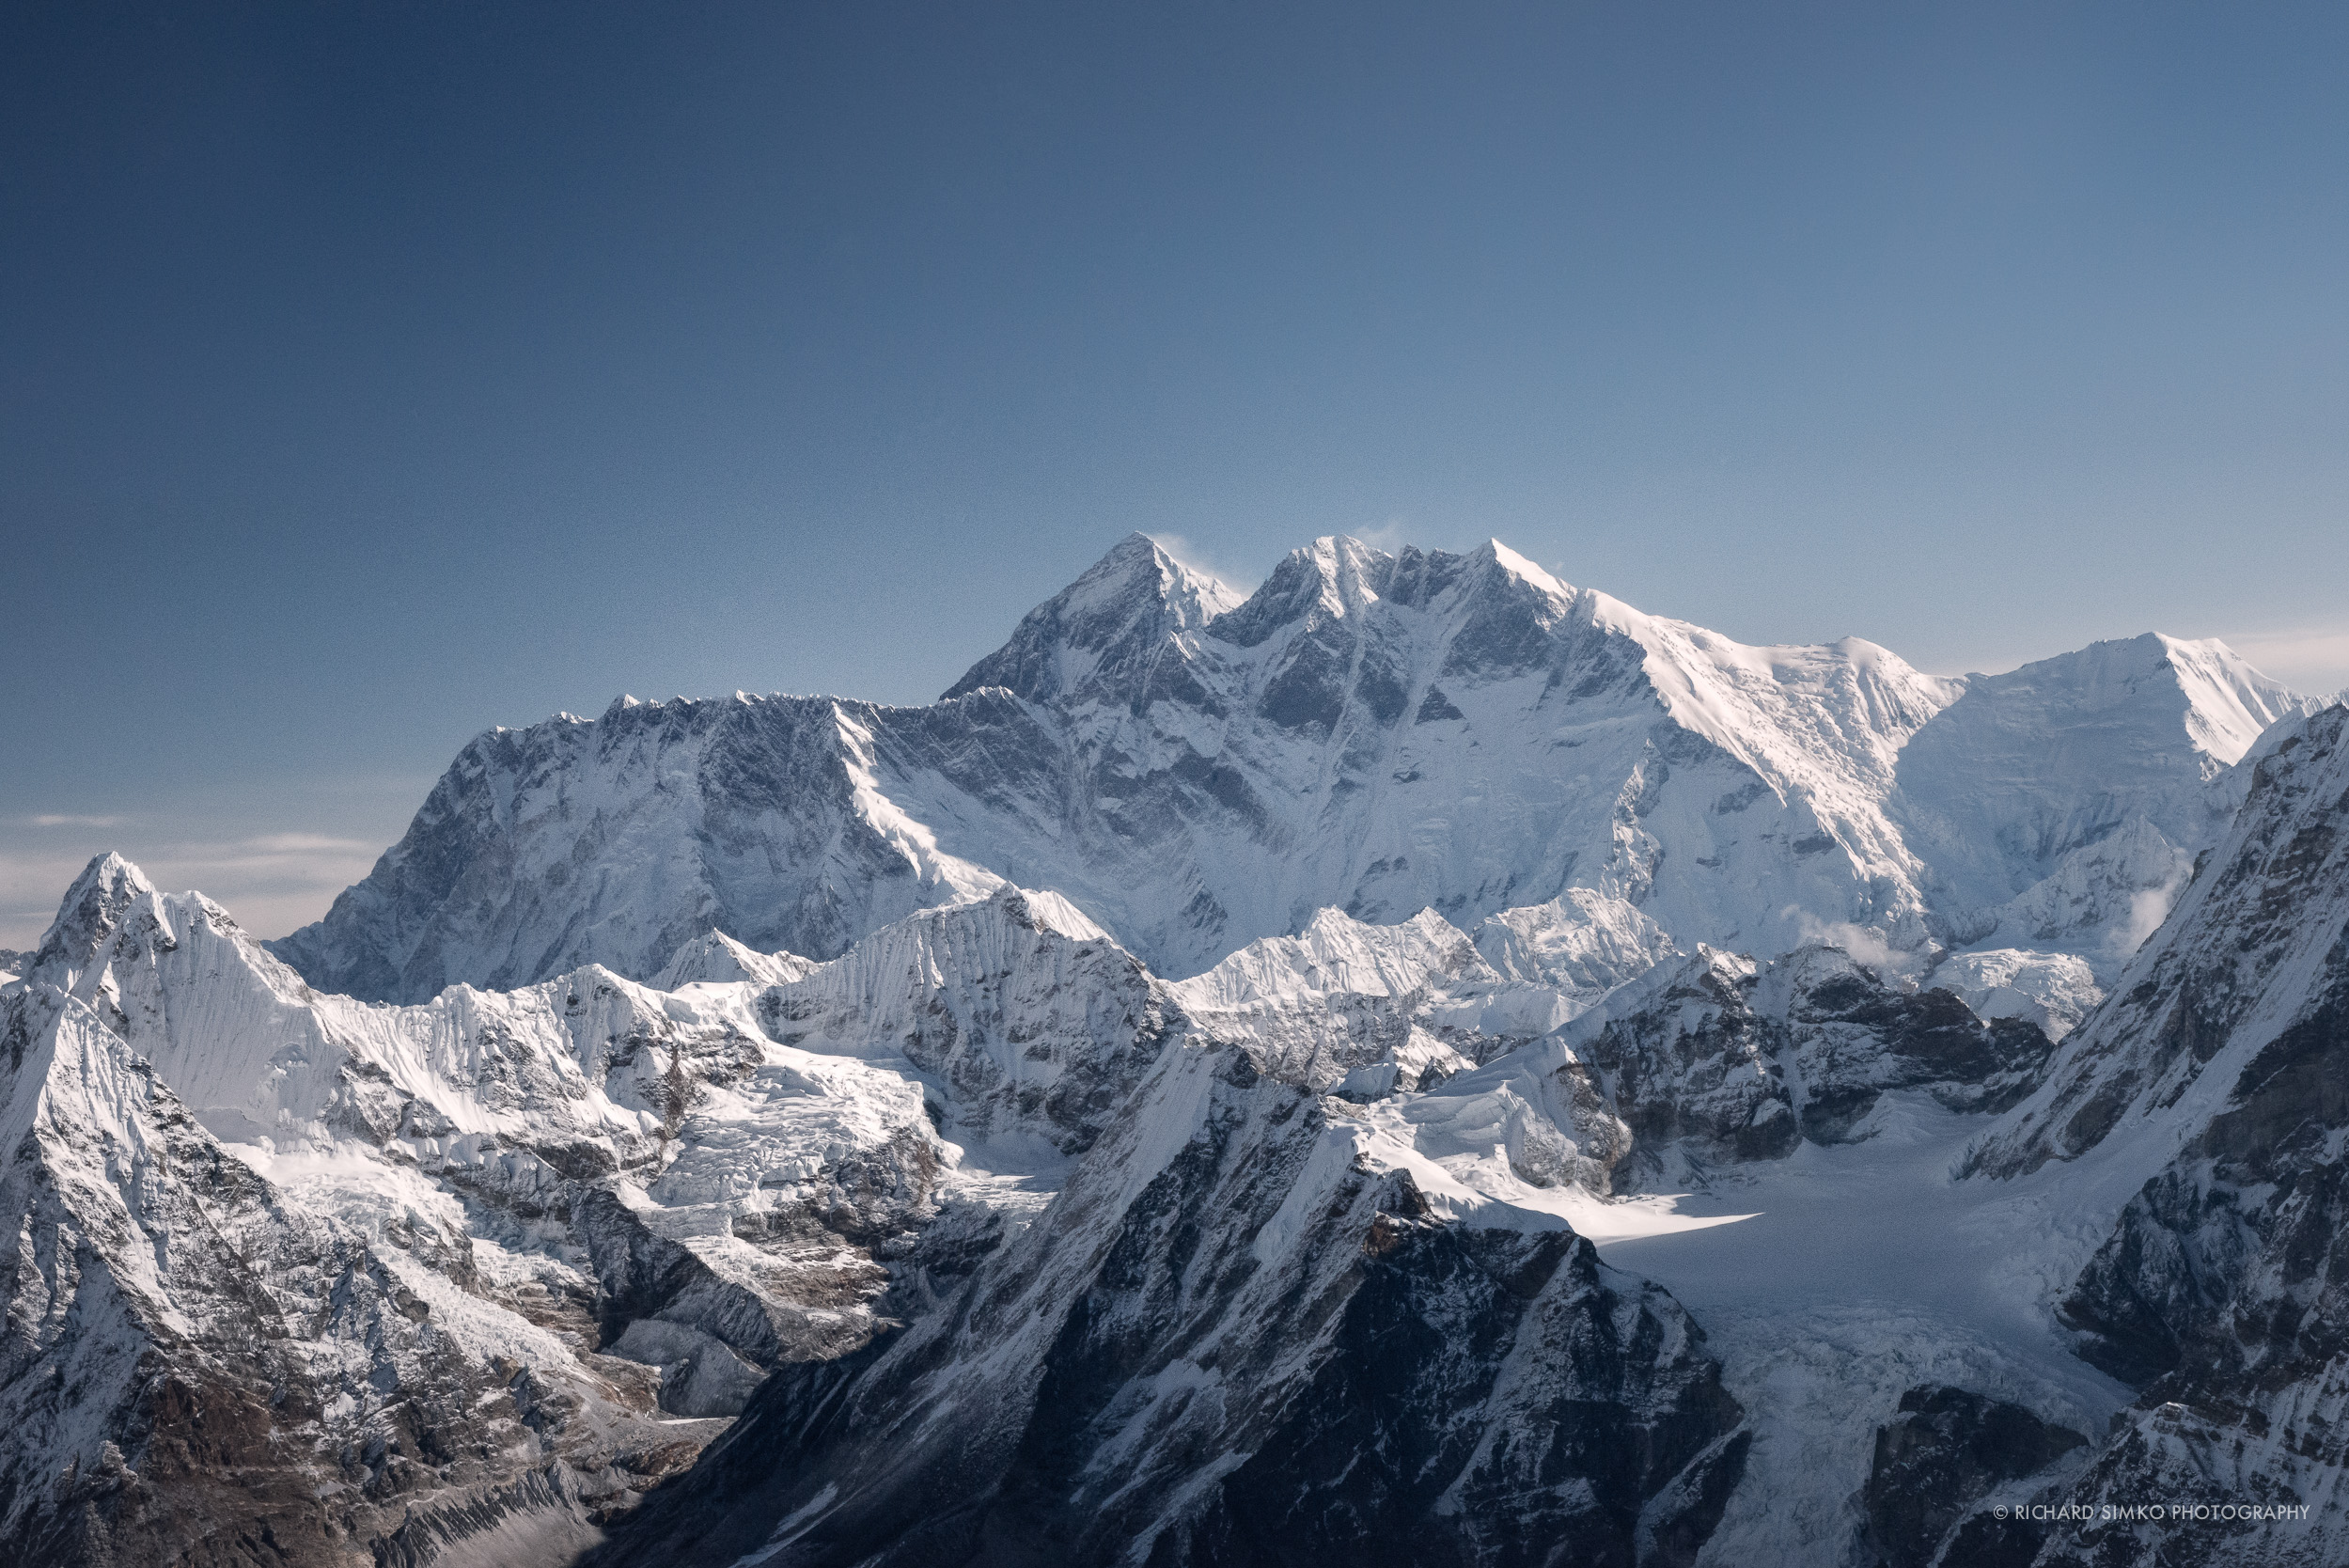 Mt Everest and Lhotse as seen from the summit of Mera Peak